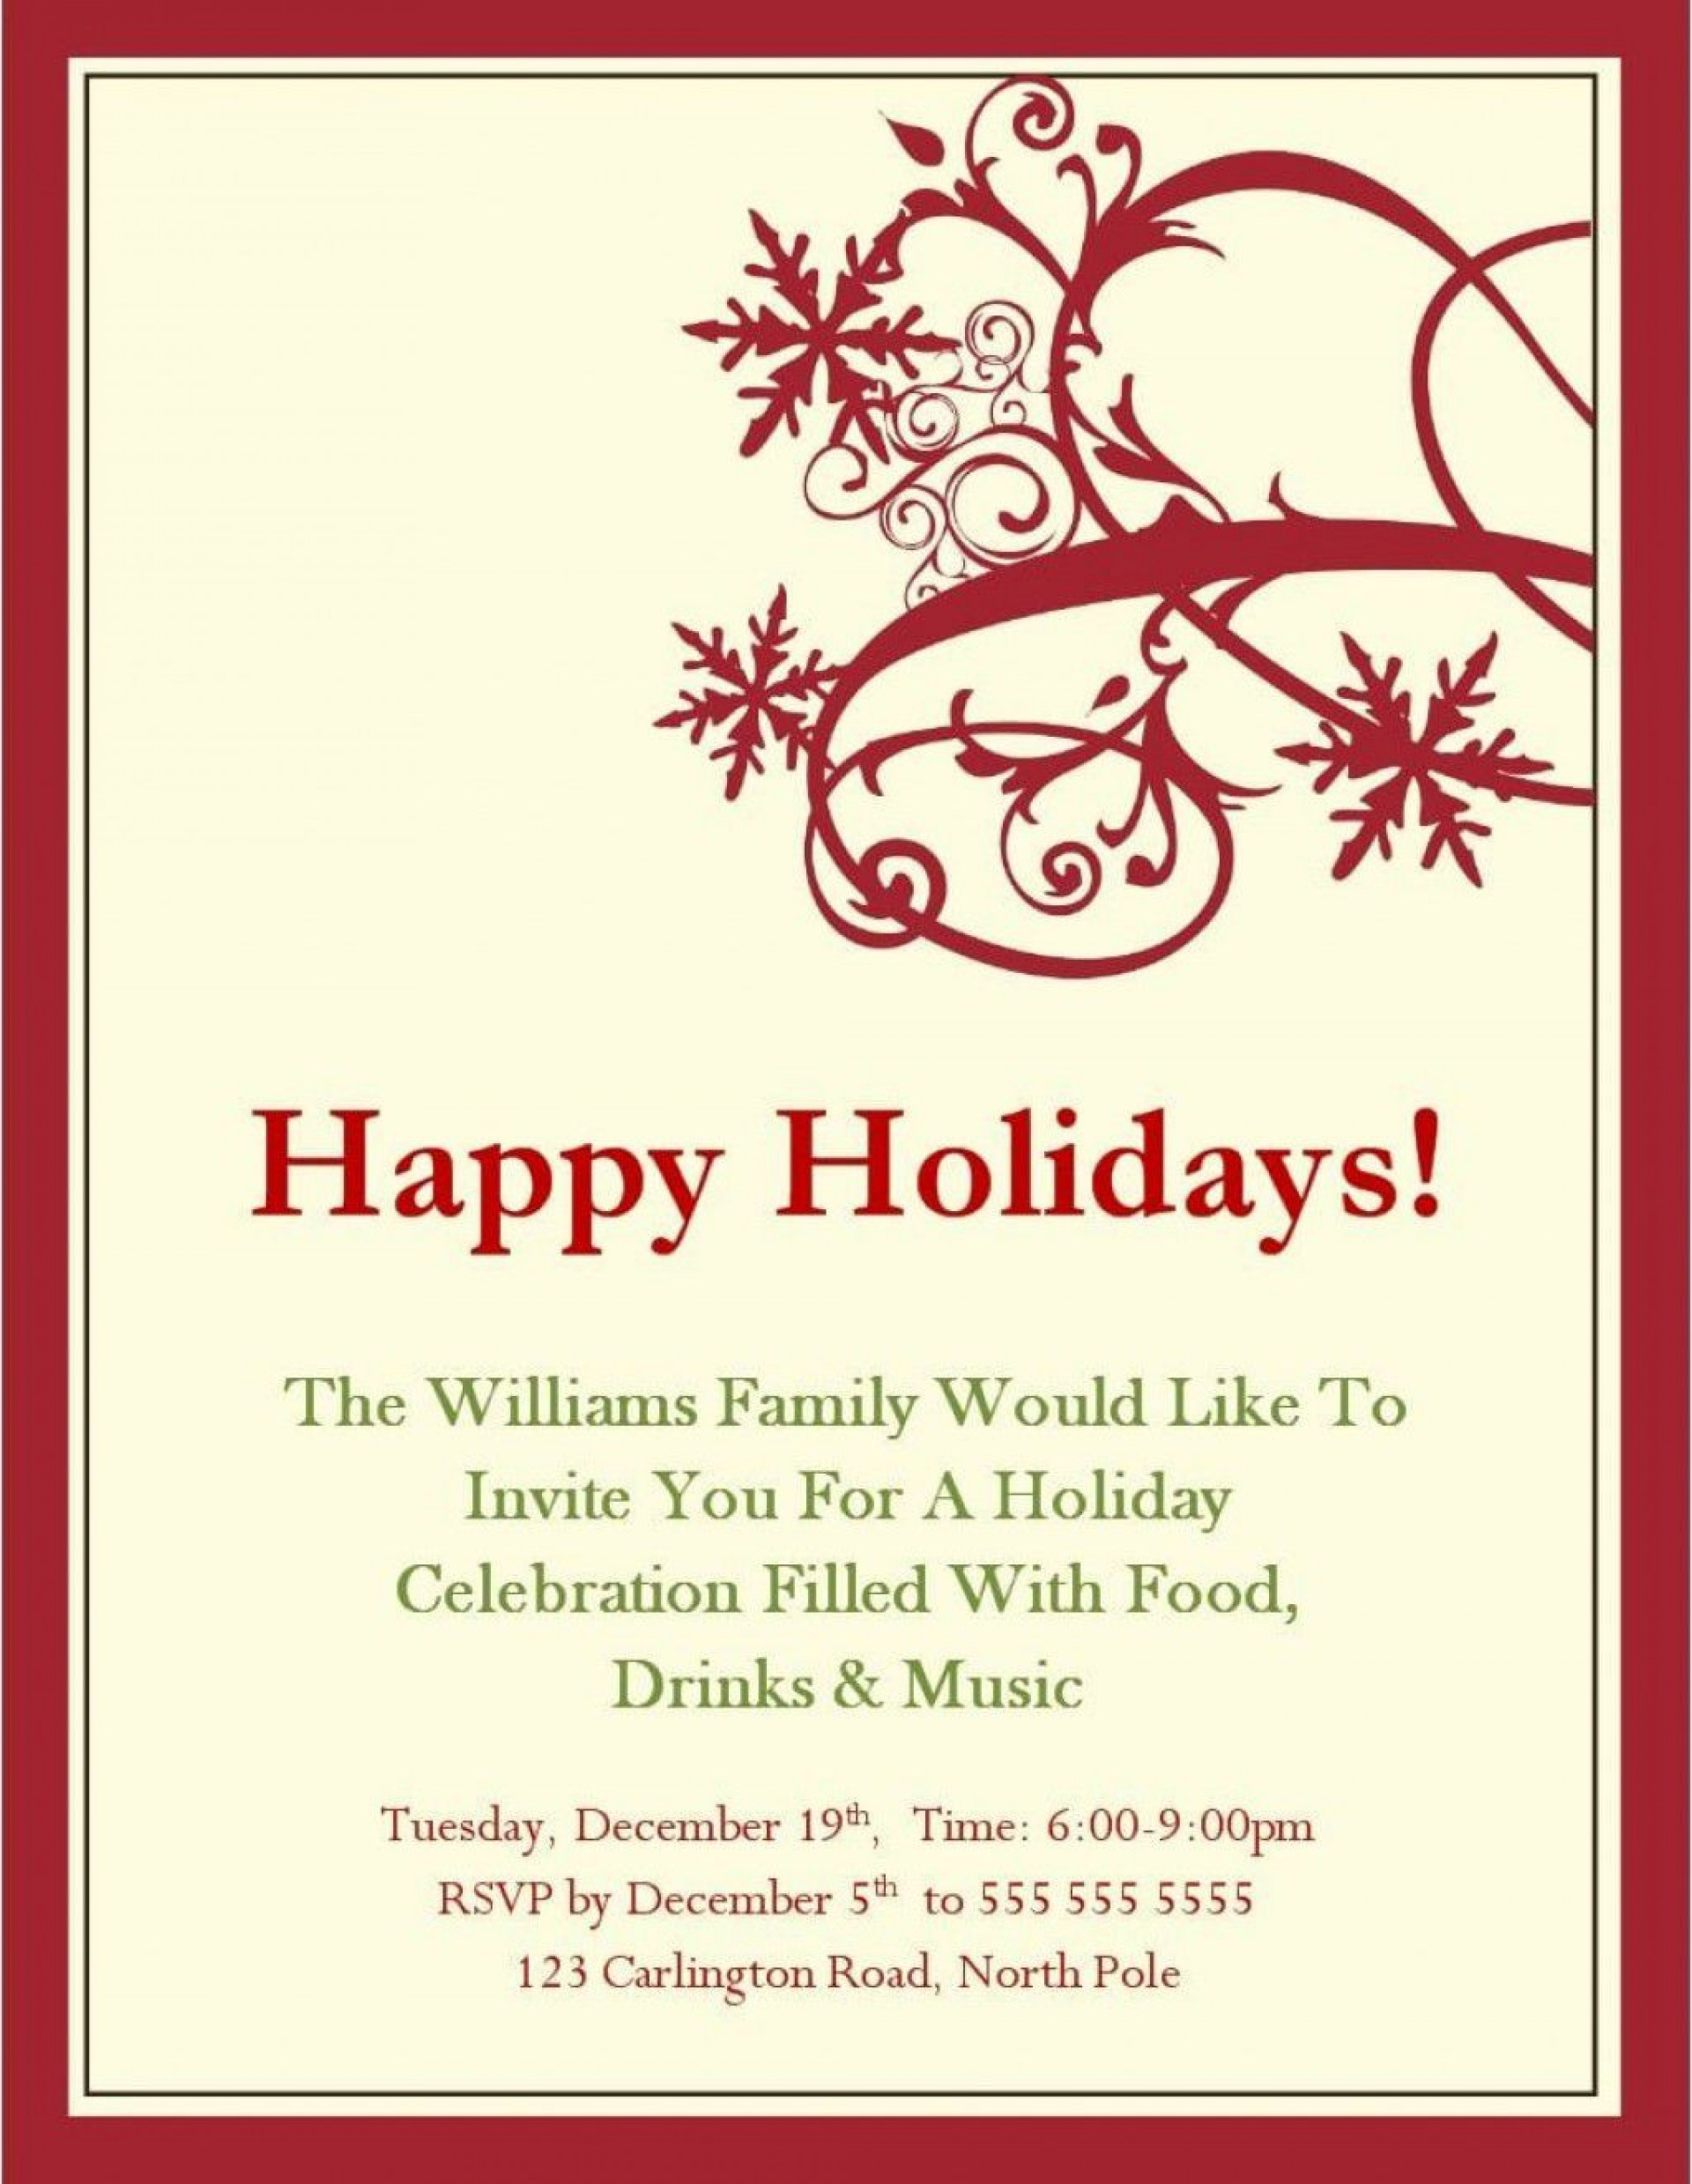 001 Unforgettable Free Holiday Invite Template High Resolution  Templates Party Ticket For Email1920